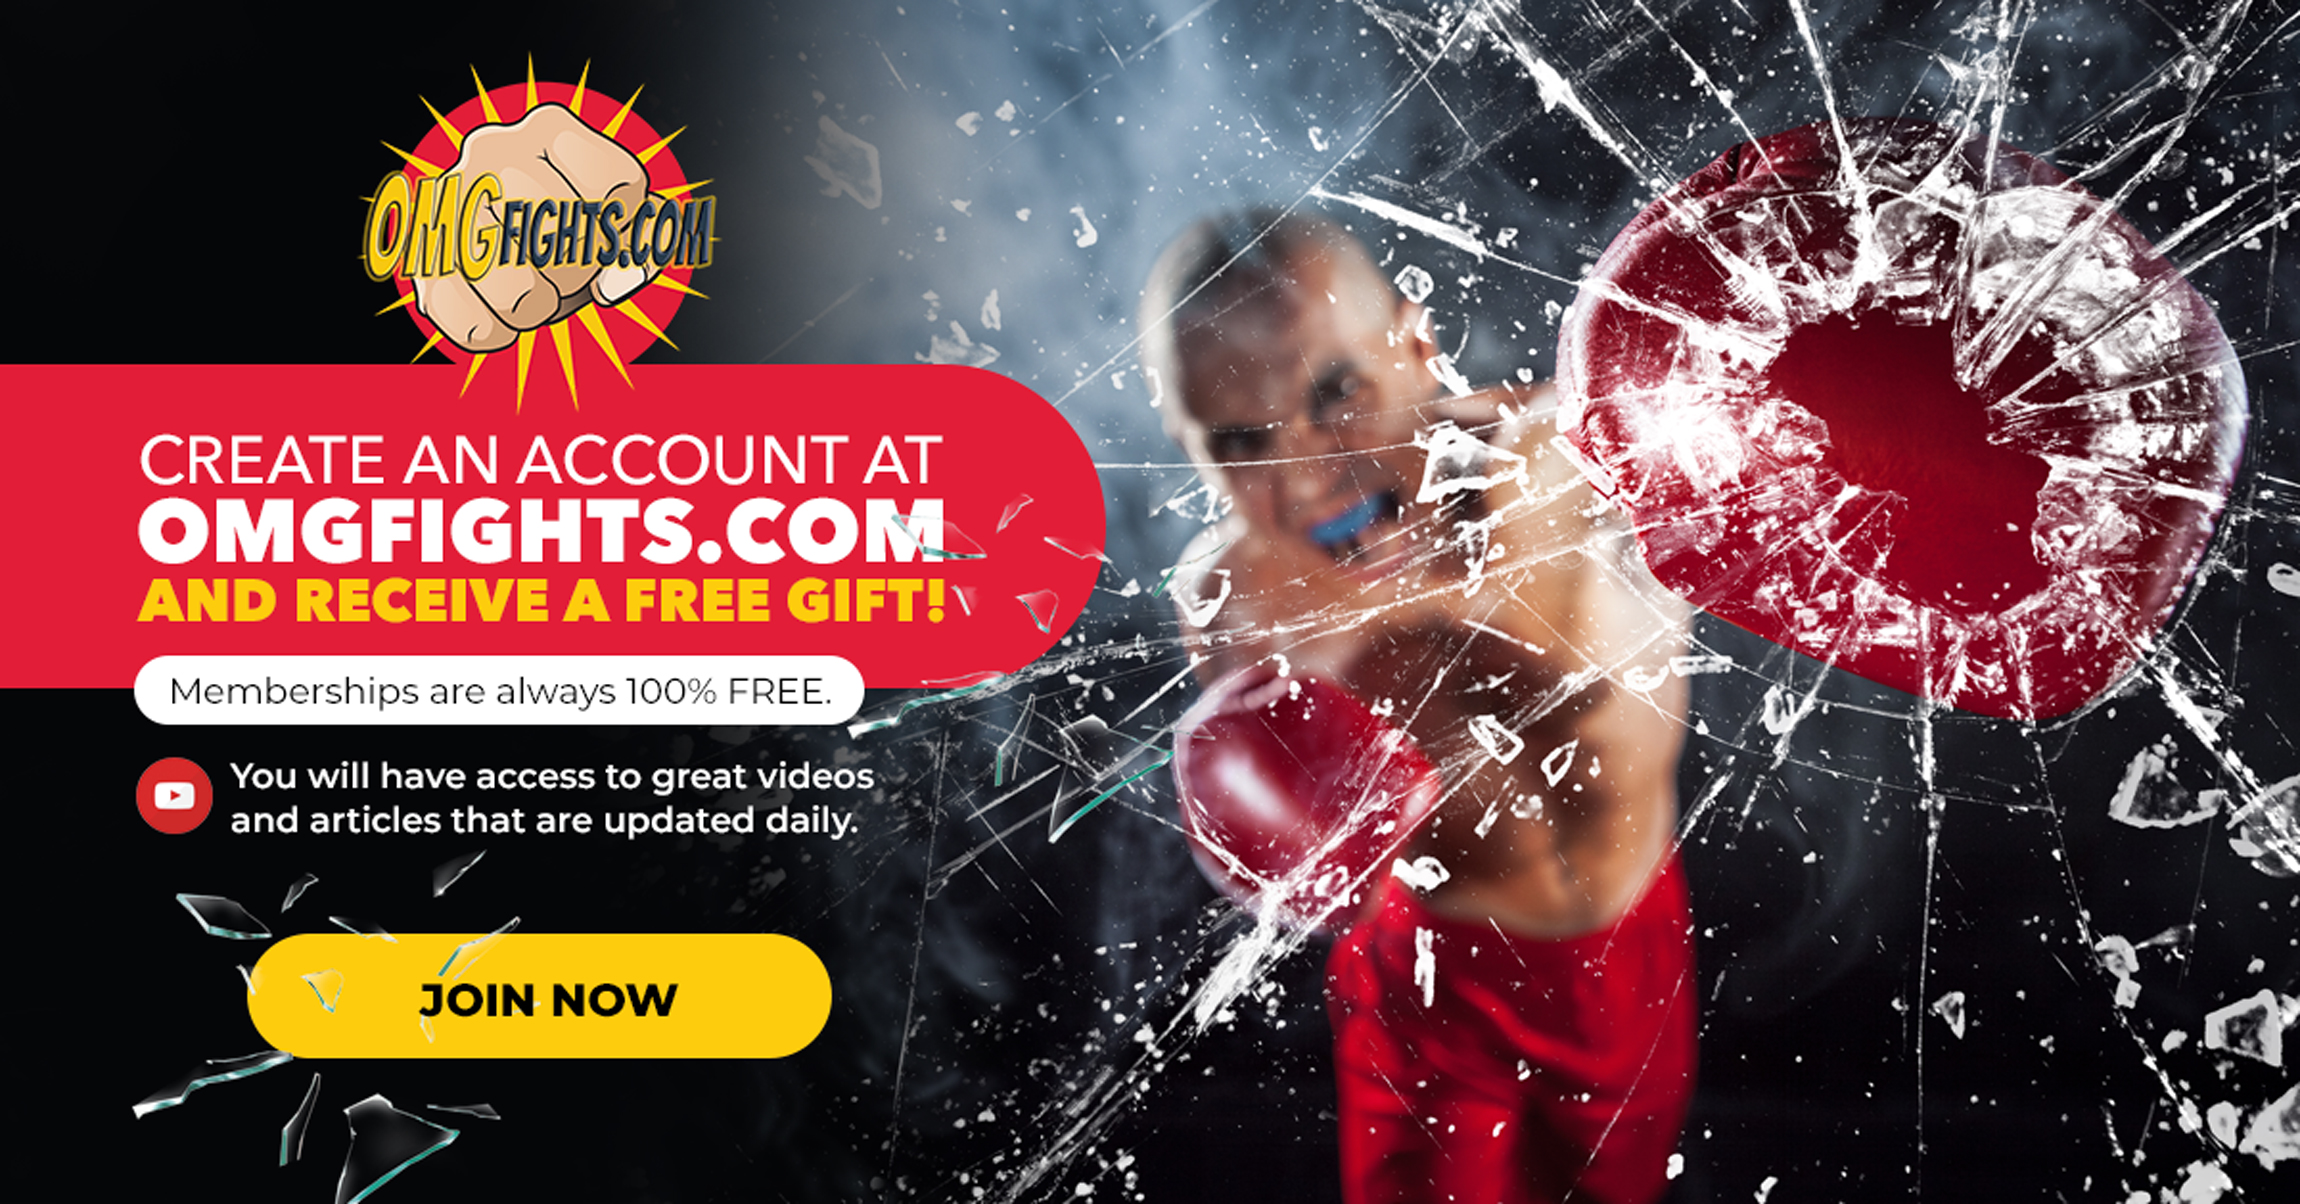 Create an account and receive a FREE GIFT!